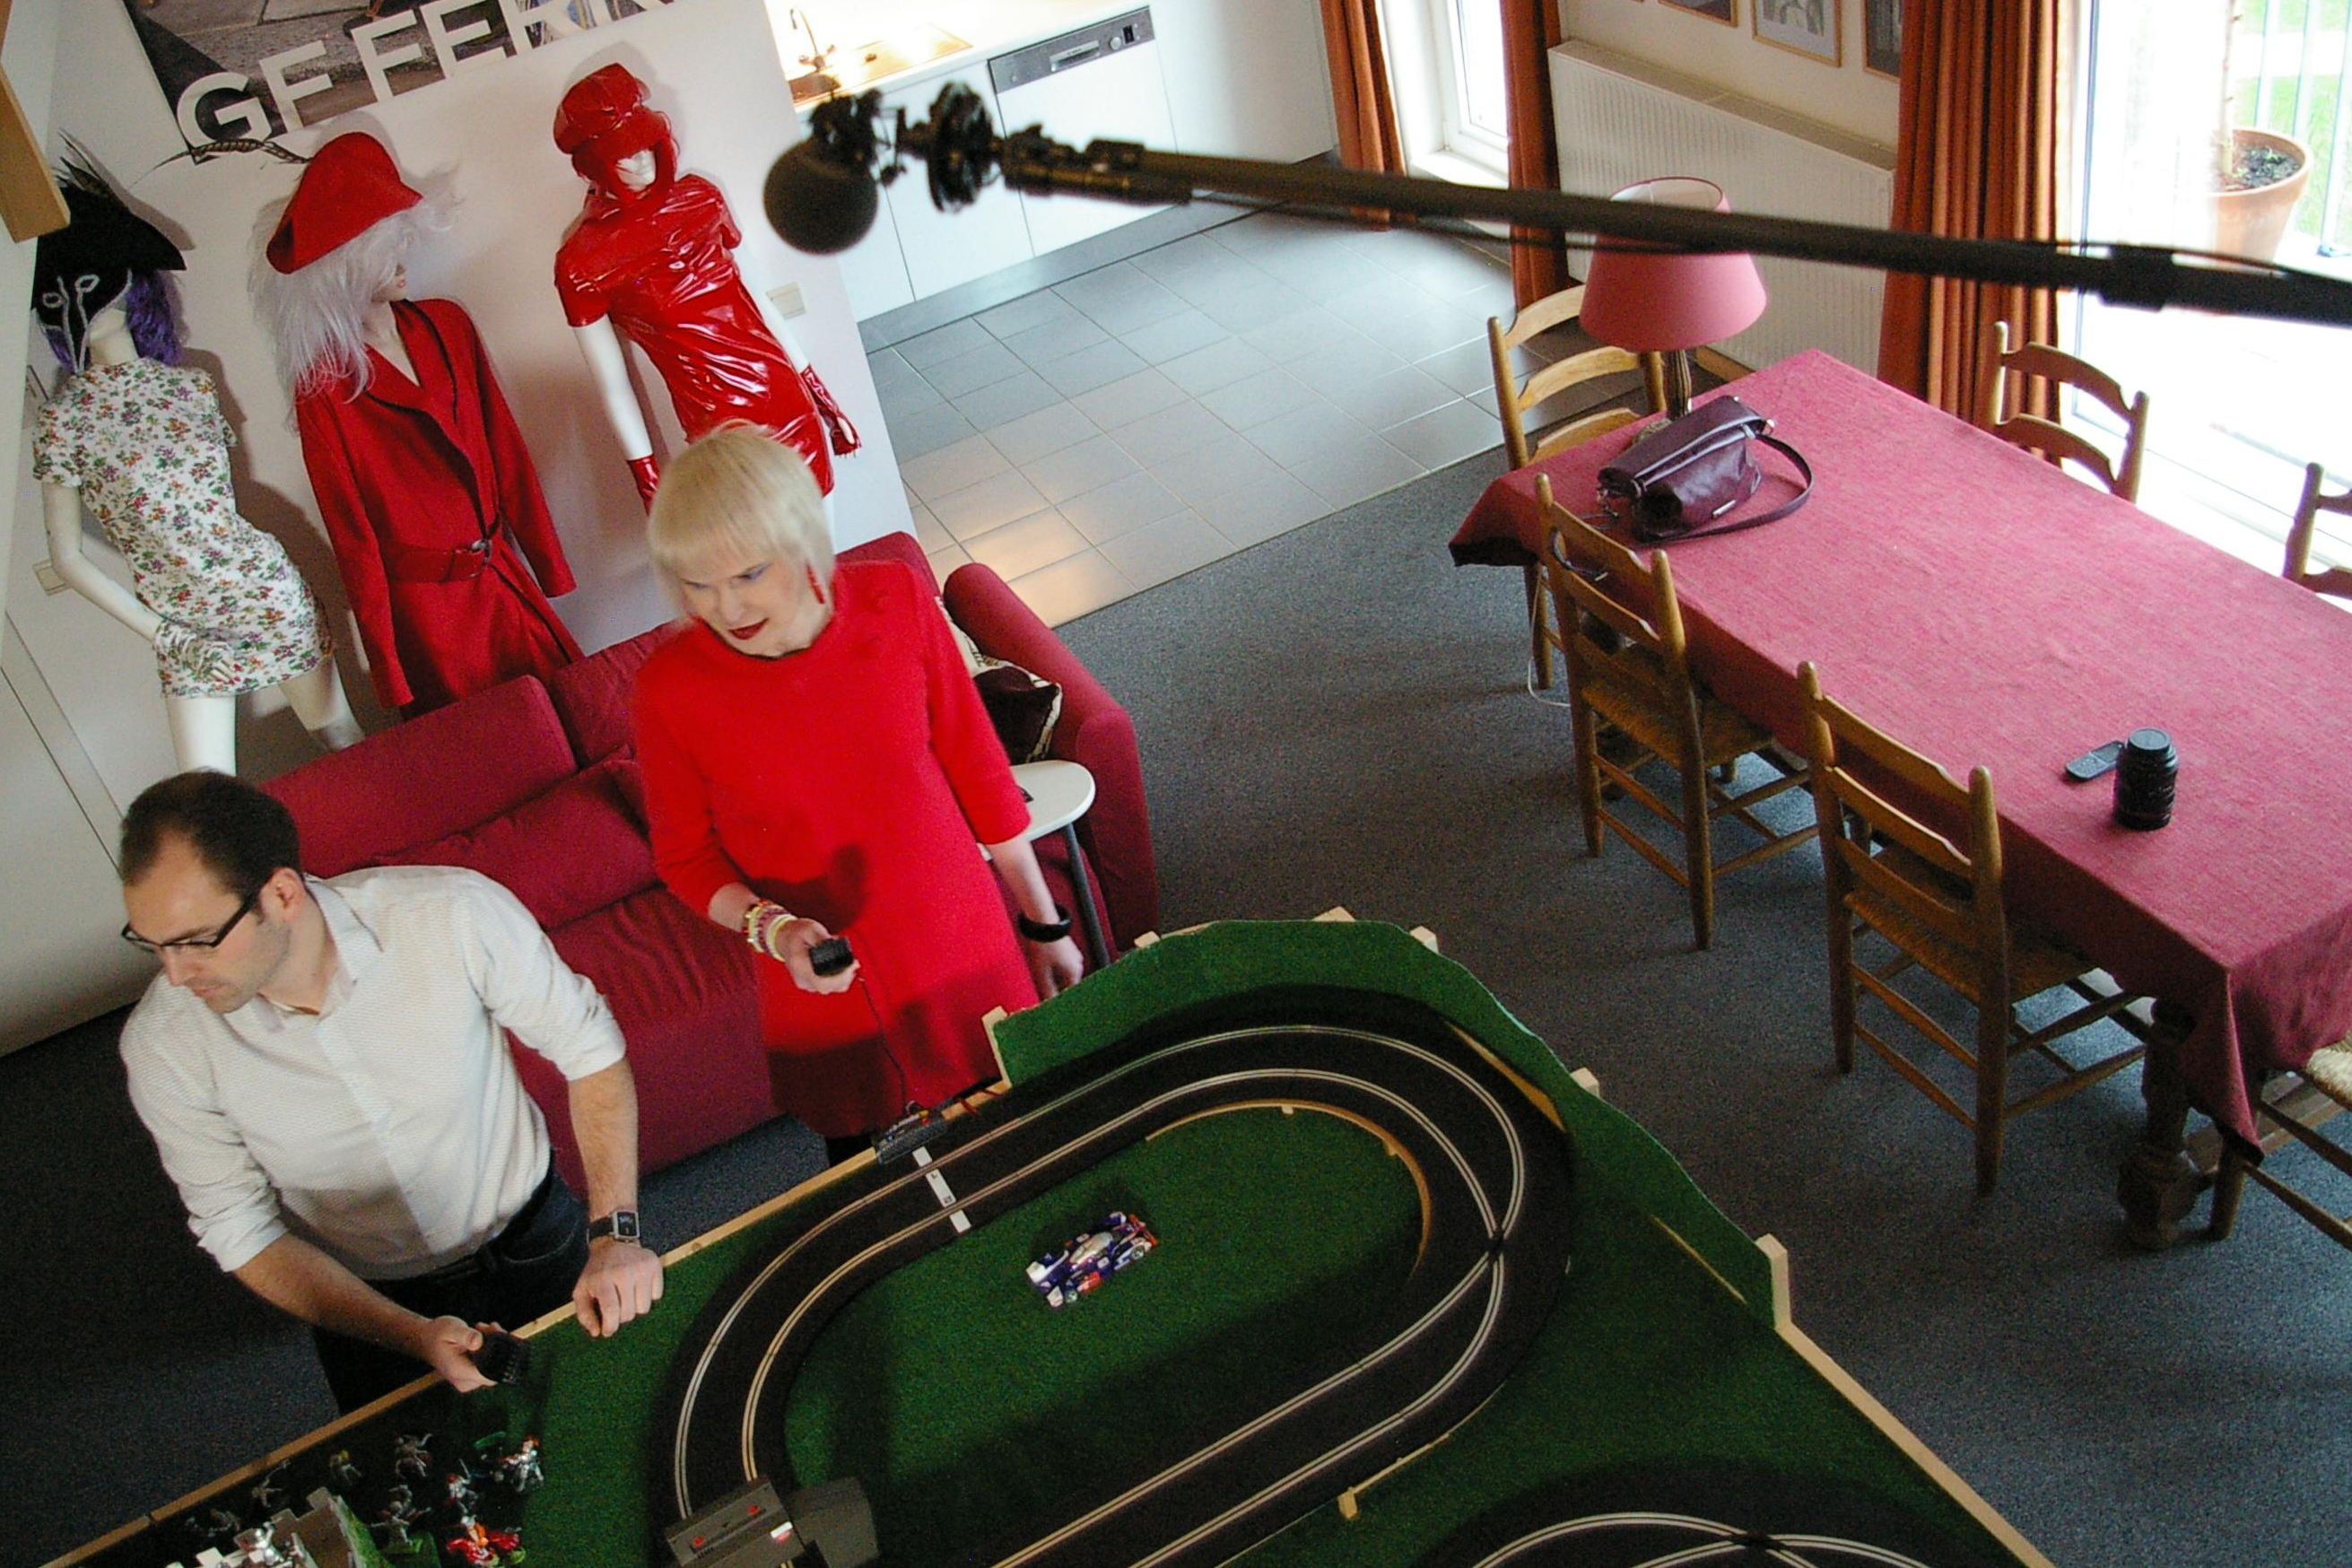 20150106-tournage-scalextric-007